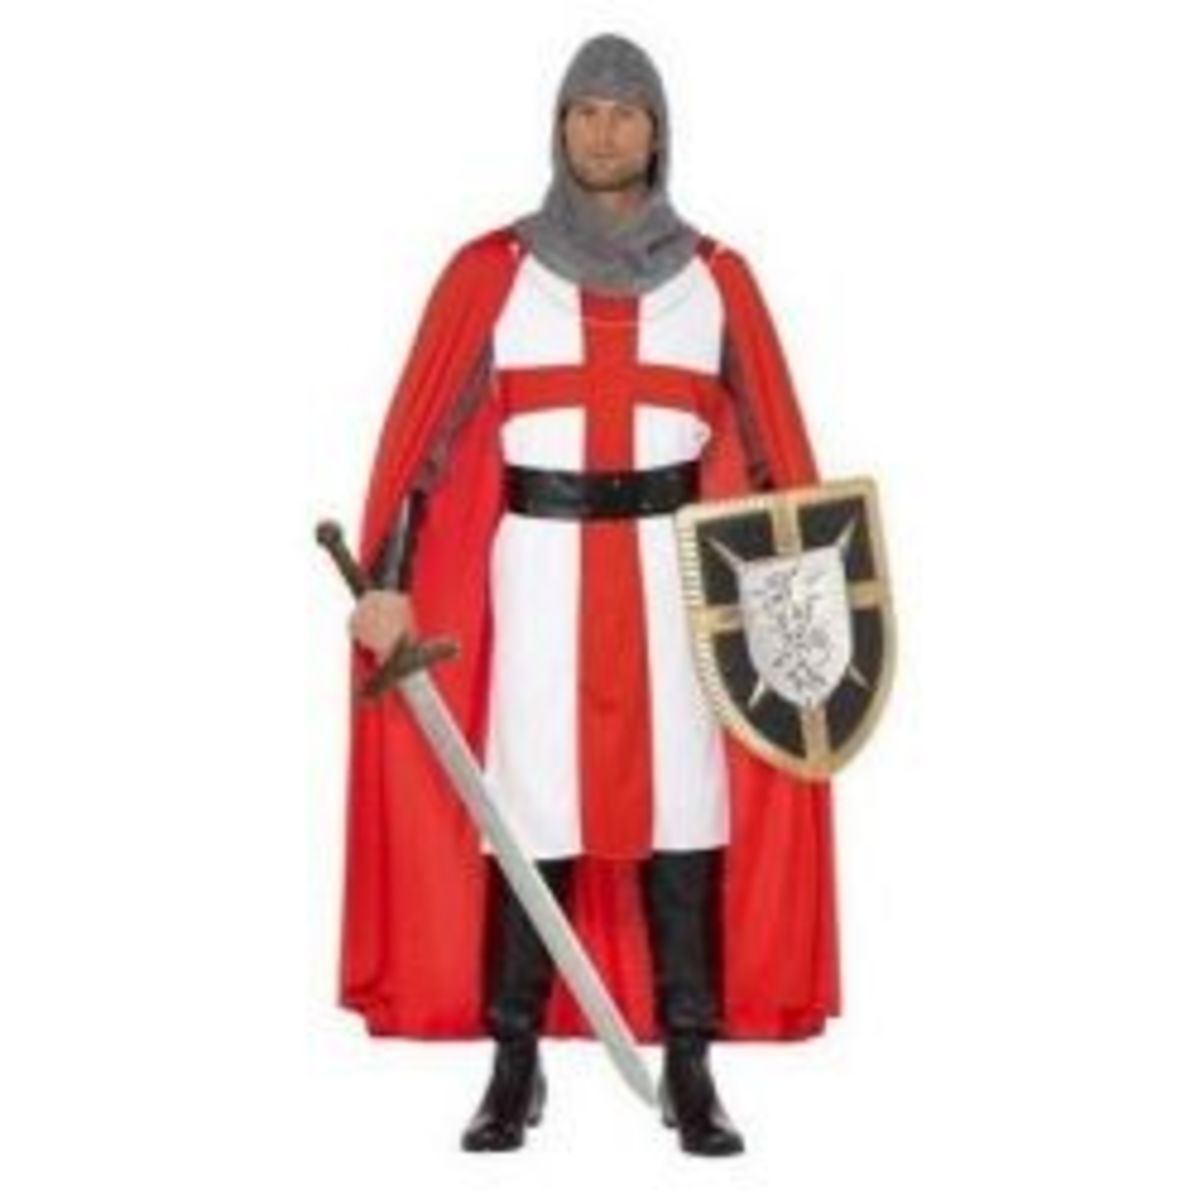 St George Costume (adult)